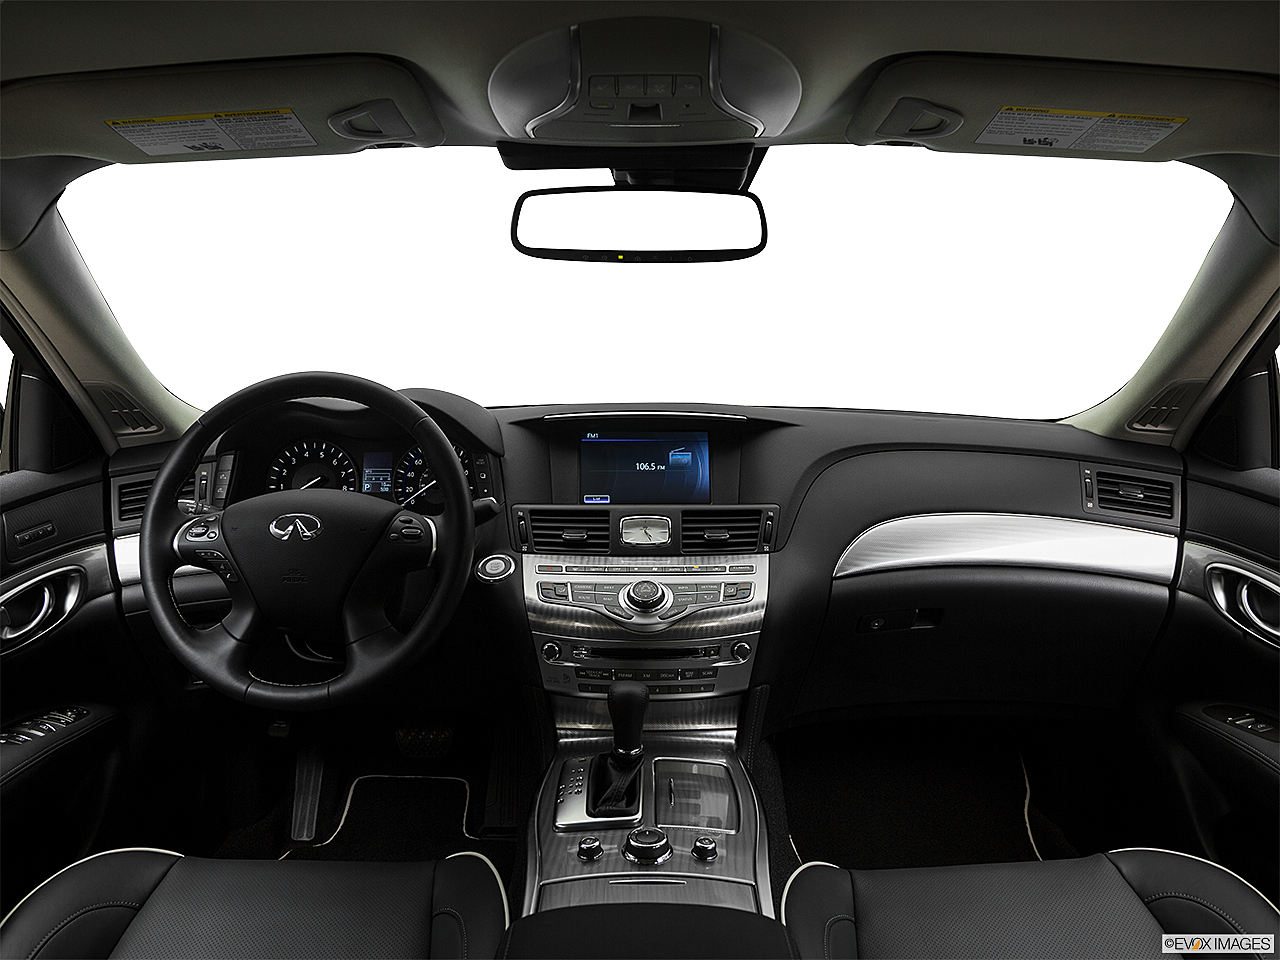 2018 Infiniti Q70 3 7 Luxe Centered Wide Dash Shot